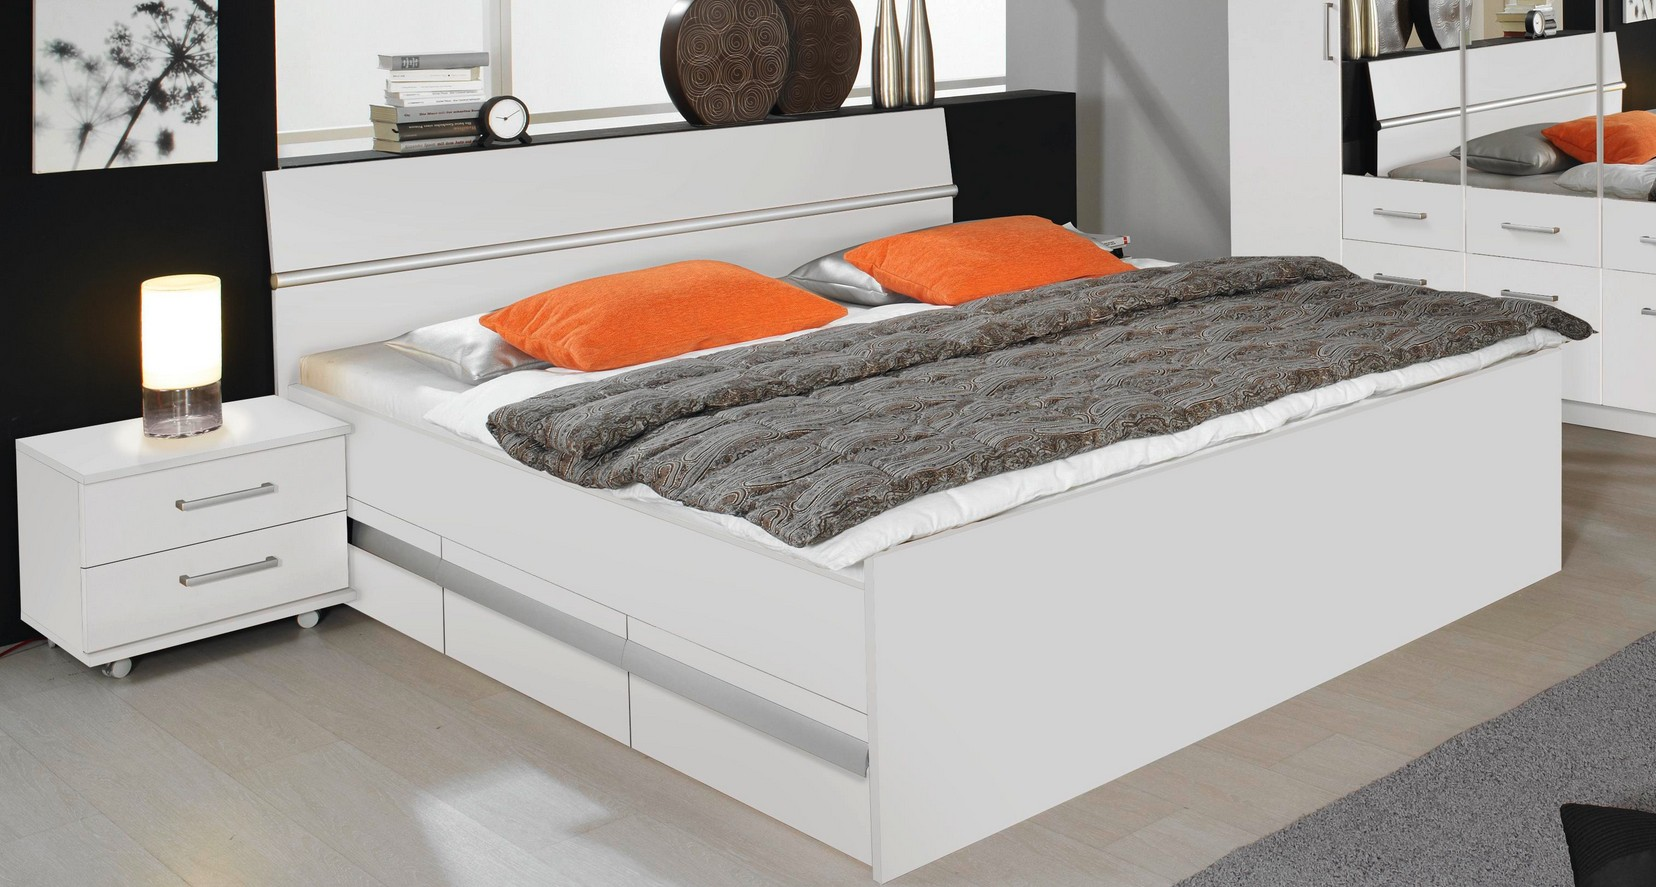 rauch packs apulien kompaktbett mit 2x3 erset sockelschubk sten g nstig kaufen m bel universum. Black Bedroom Furniture Sets. Home Design Ideas